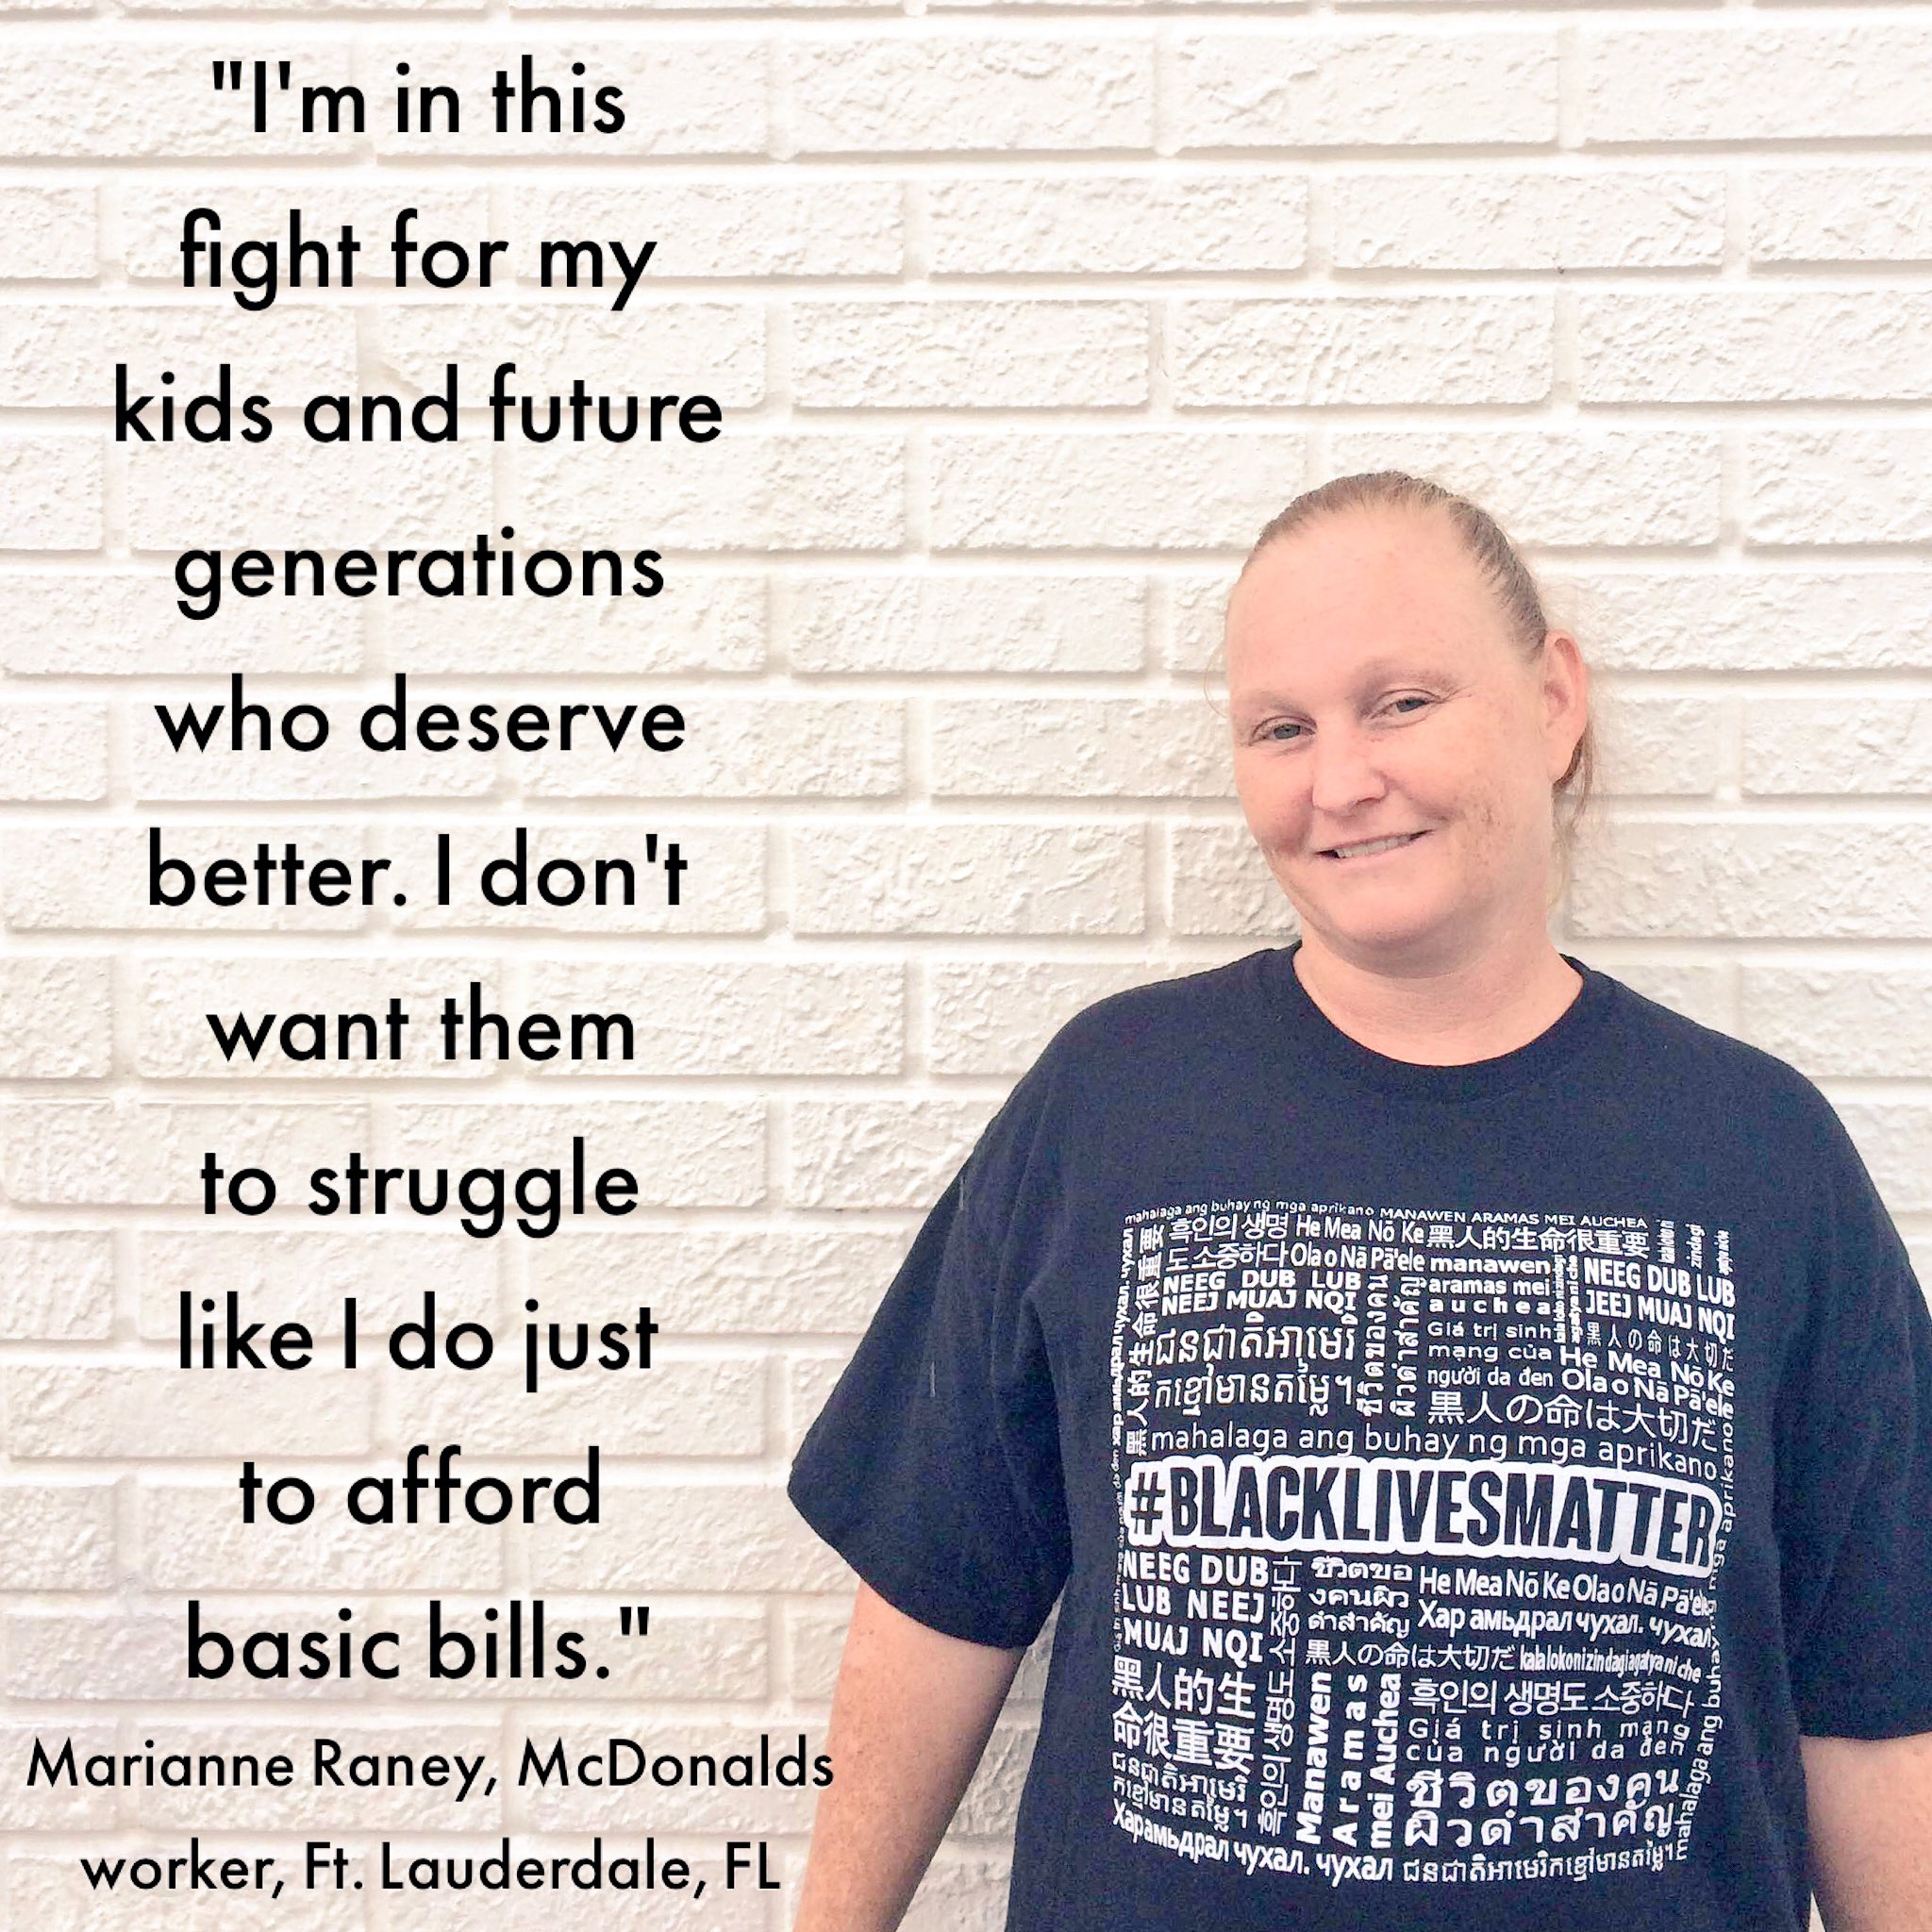 Marianne is bringing the Fight from down South of the South to Richmond for her kids future. #FightFor15 https://t.co/yIP3GAAEU3